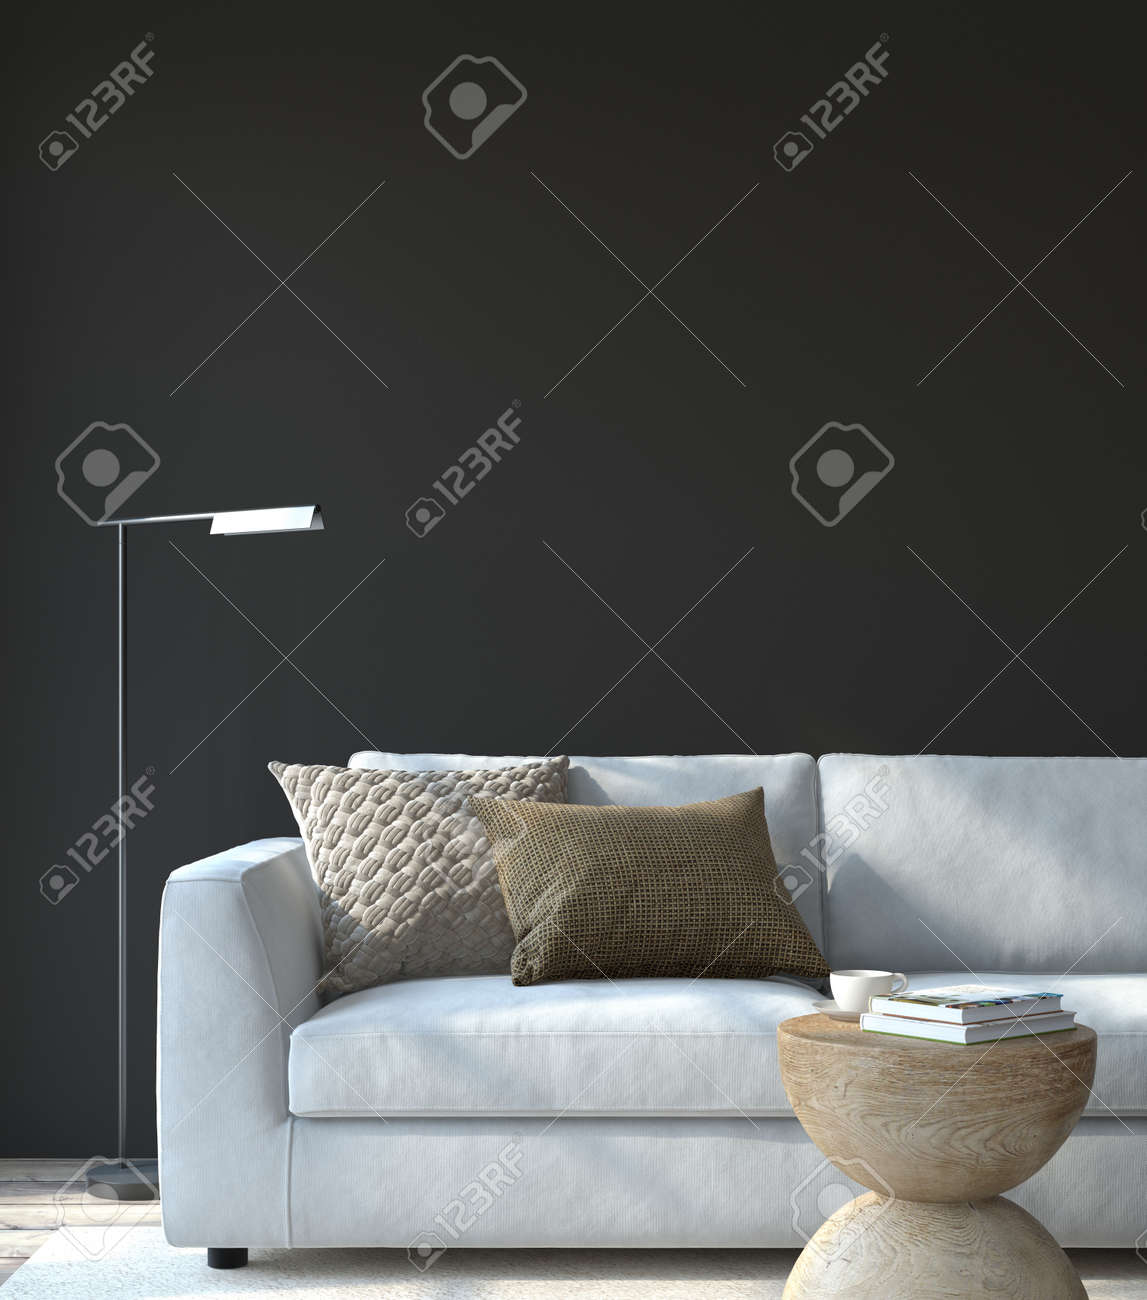 Modern living room interior. Interior mockup. The white couch near empty black wall. 3d render. - 164758486